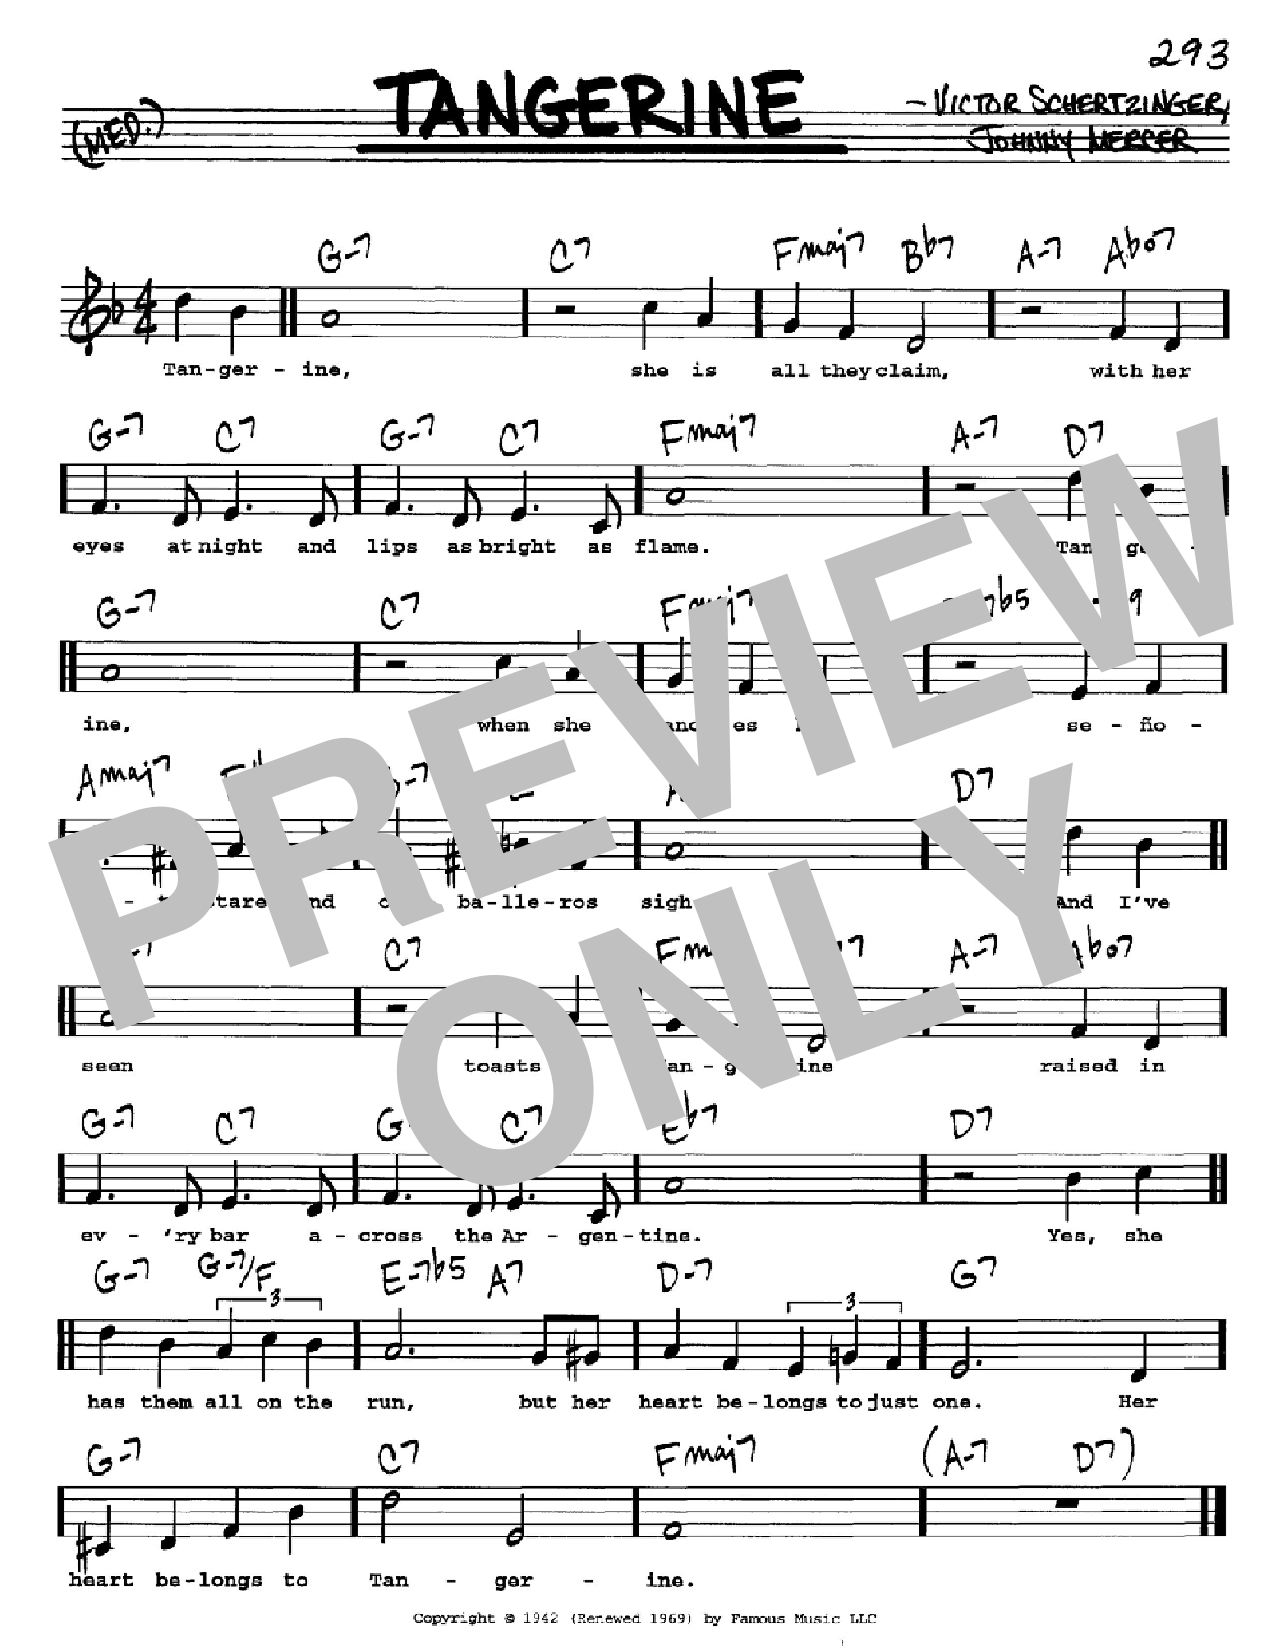 Tangerine Sheet Music